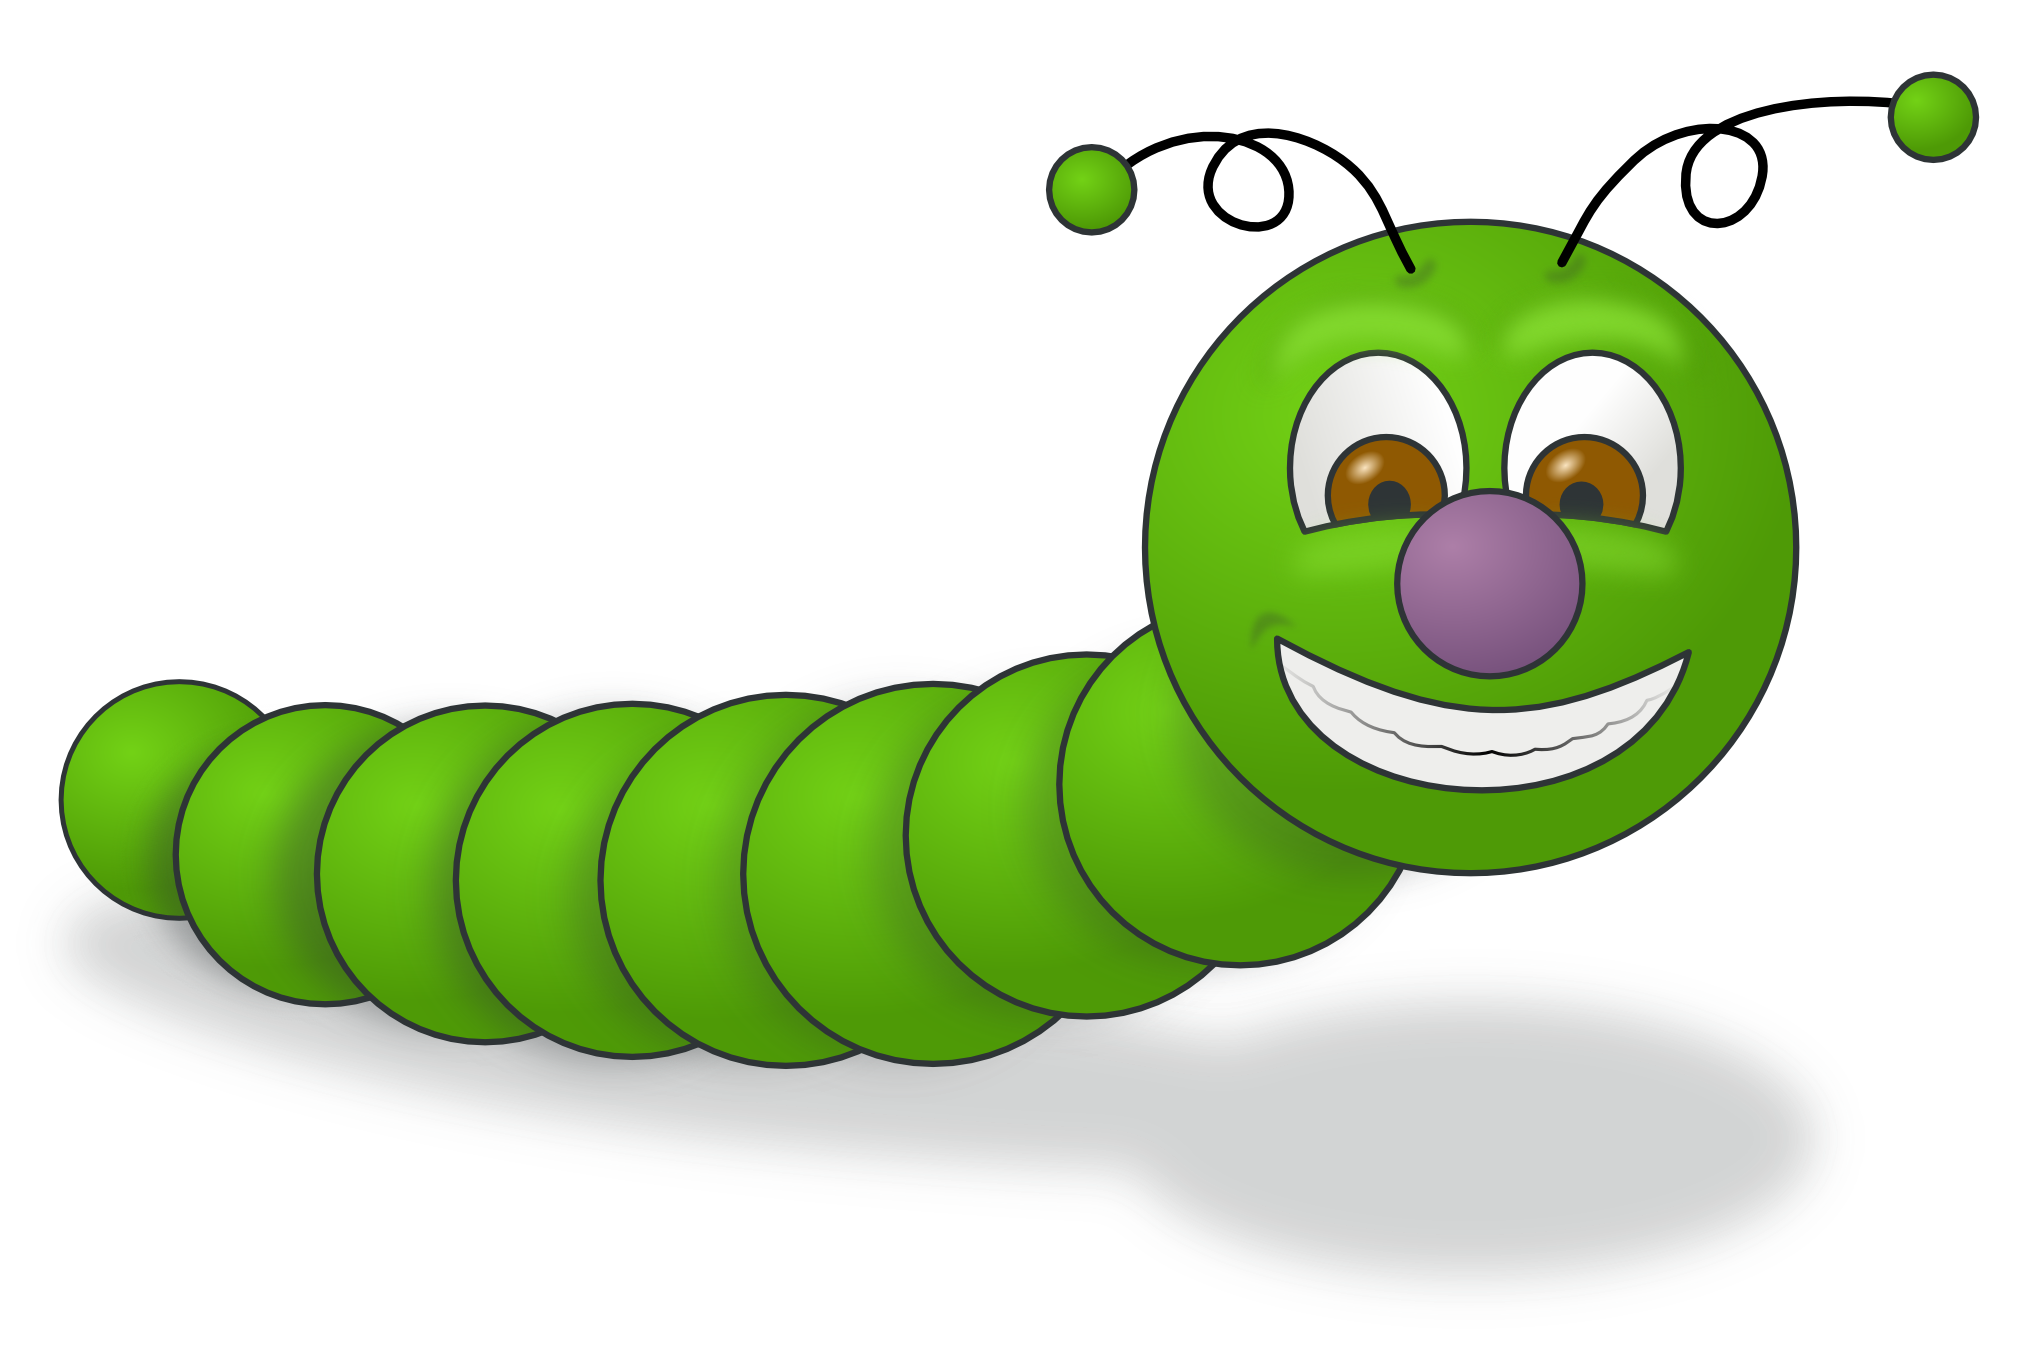 Cute inchworm clipart banner download Inch Worm Clipart | Free download best Inch Worm Clipart on ... banner download